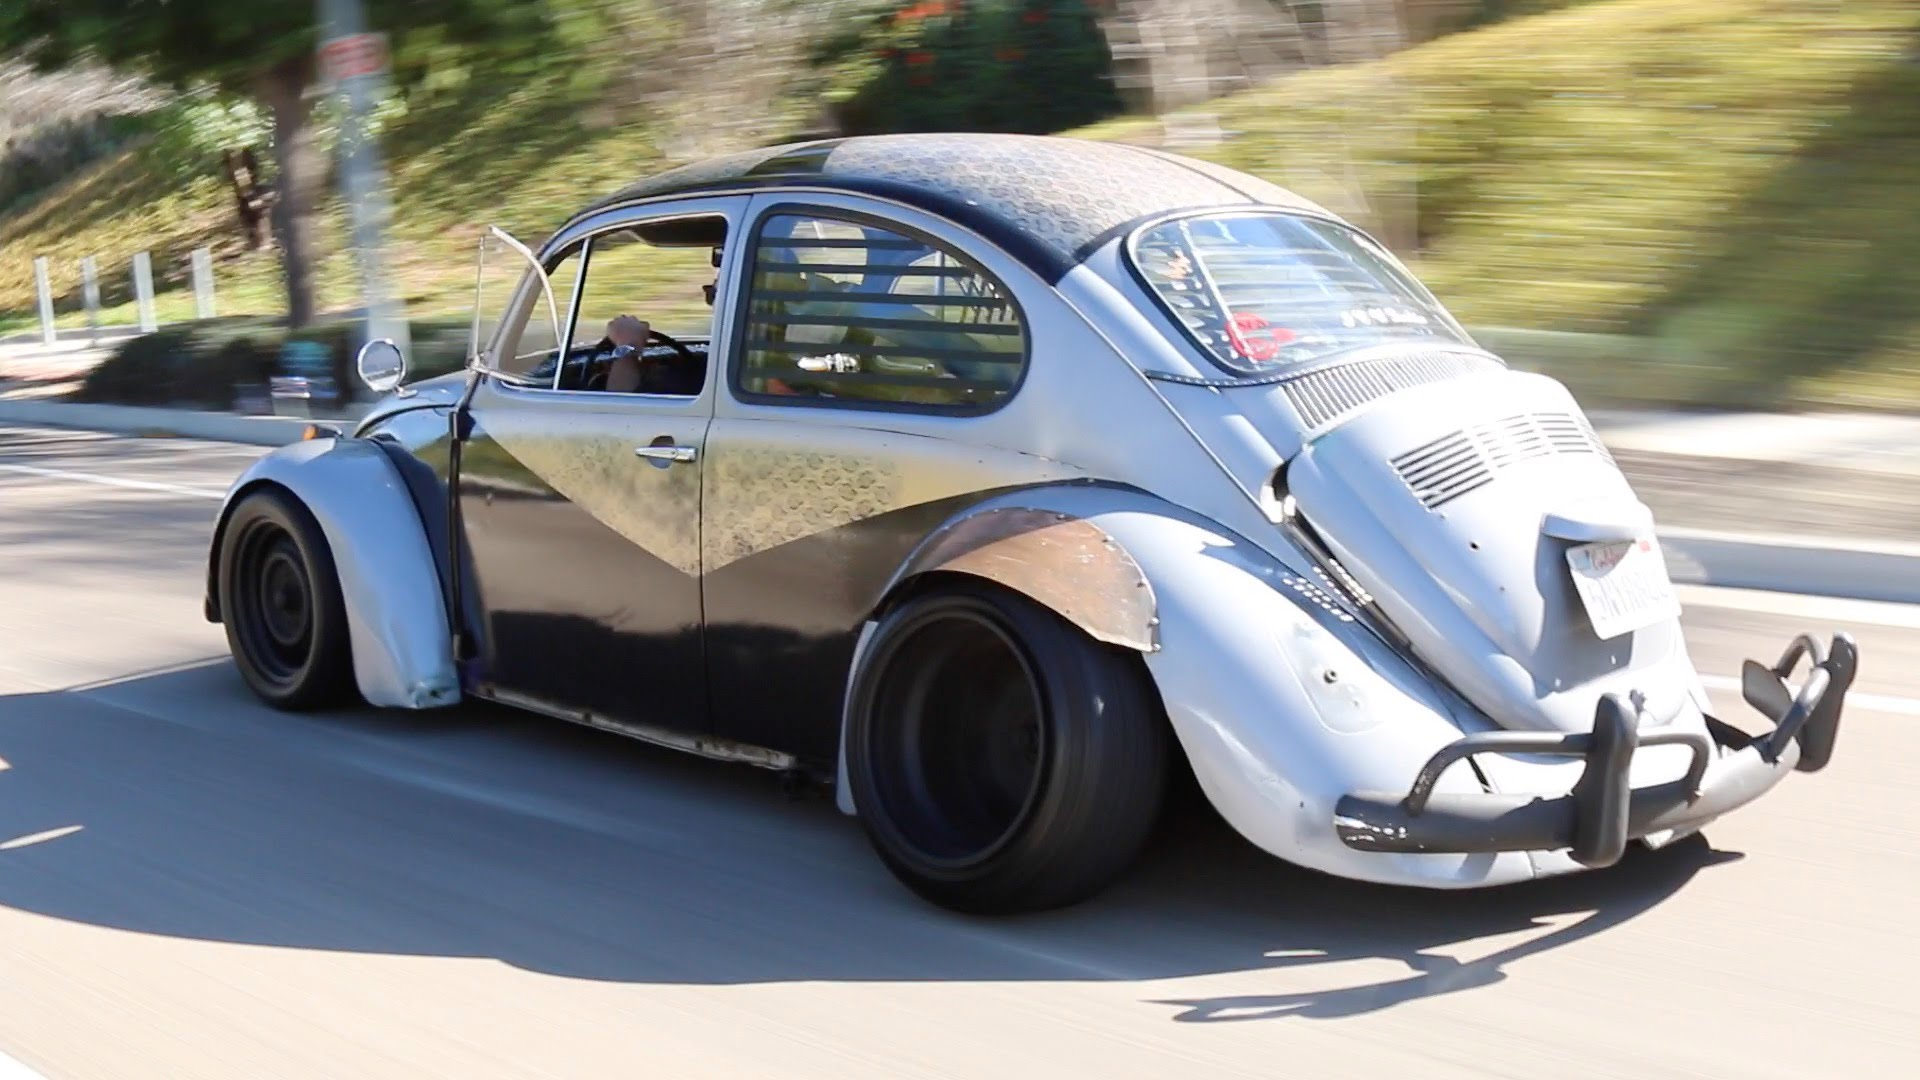 2014 vw beetle fuse diagram 1968 vw beetle rat bug is the coolest lil rsquo rat rod you #15